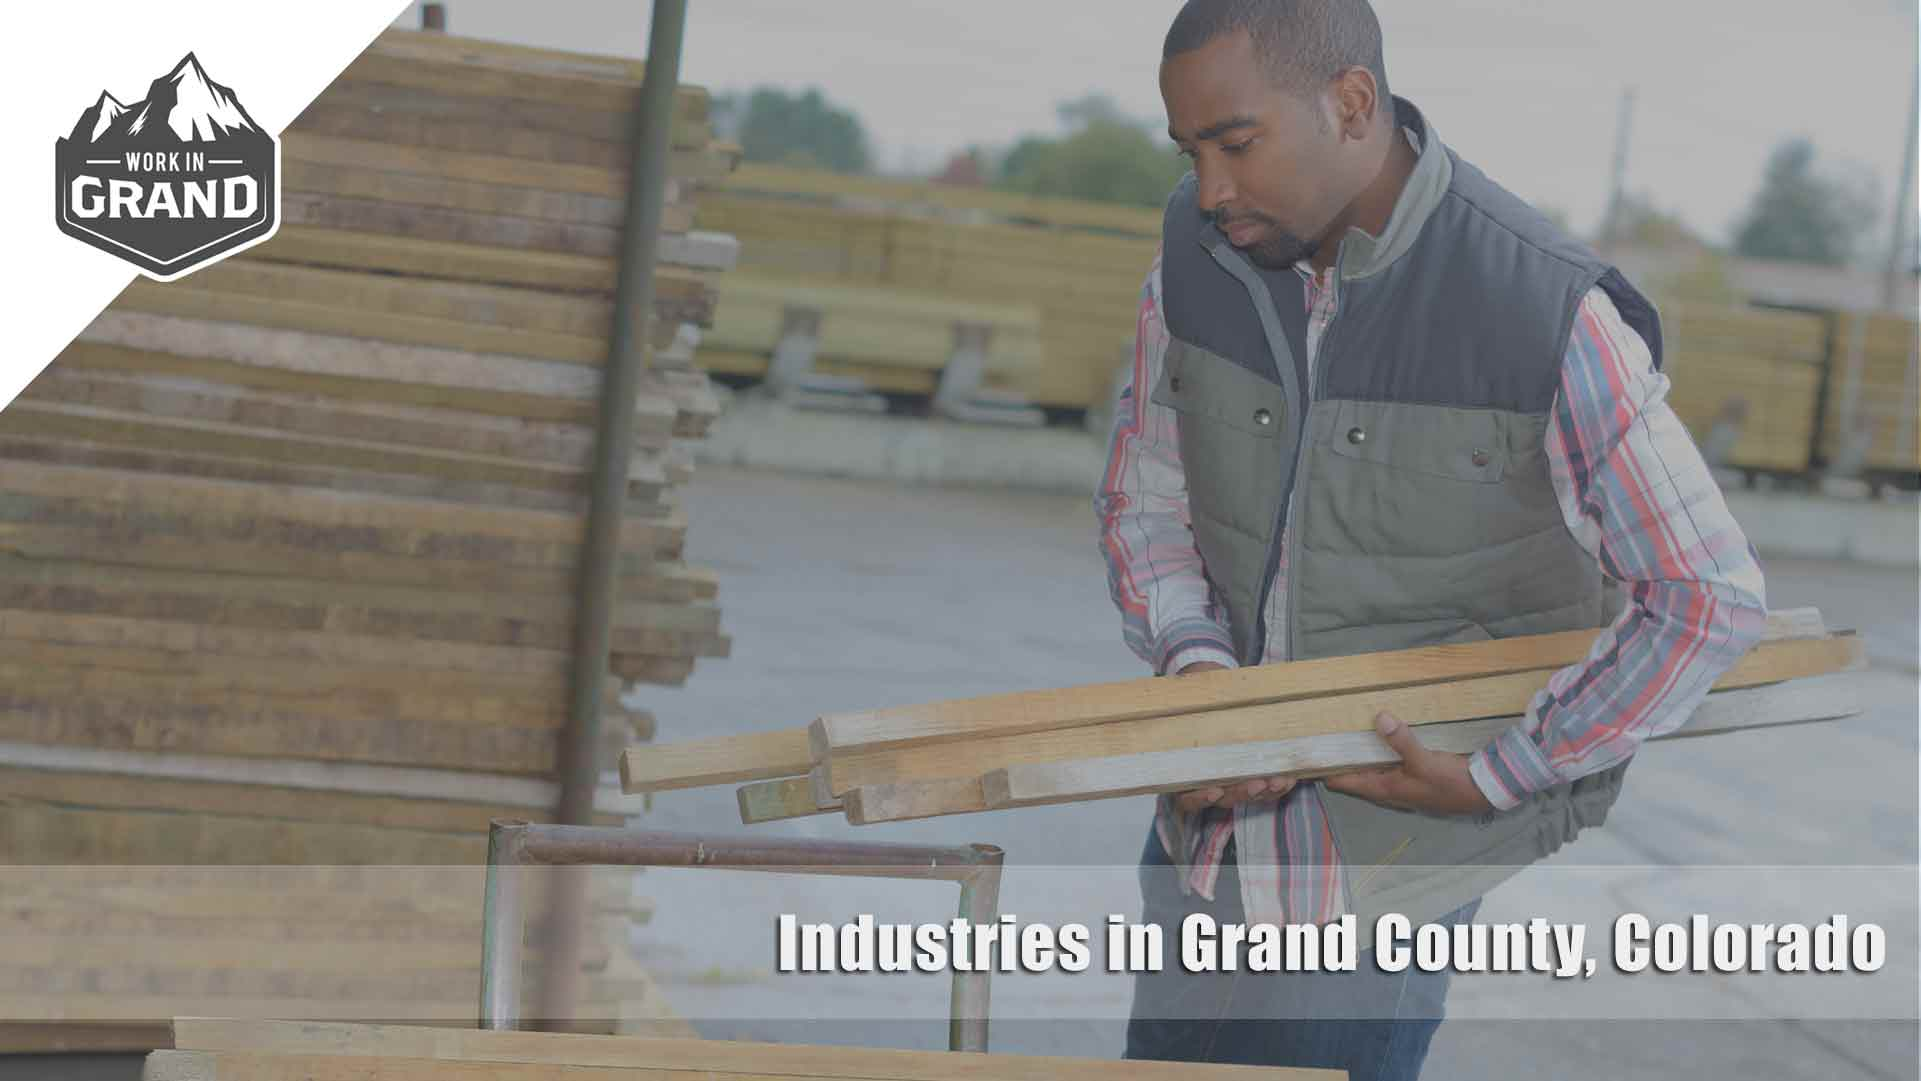 Industries in Grand County, Colorado